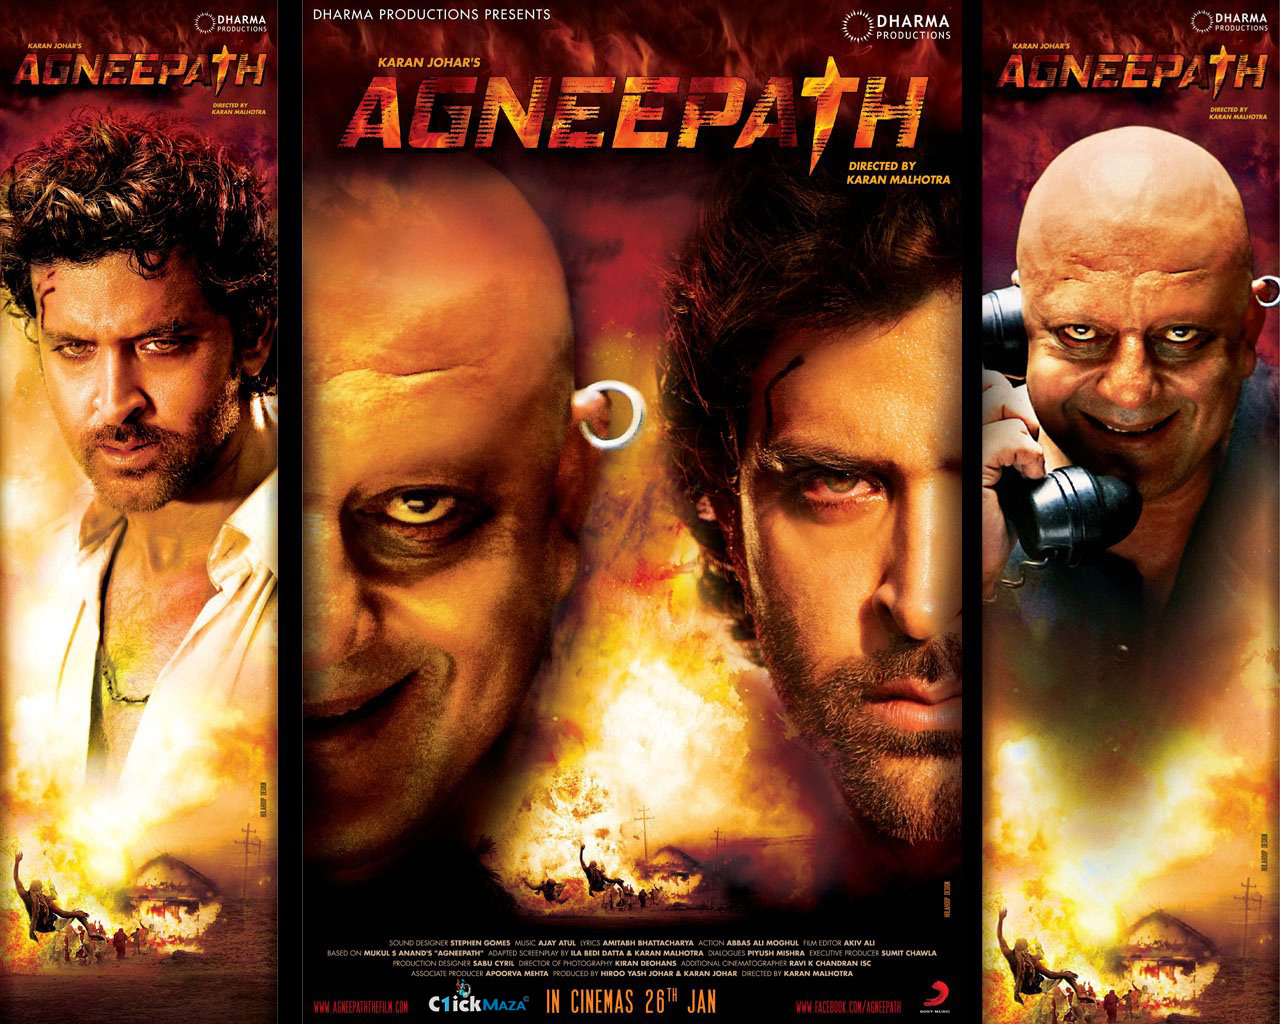 http://4.bp.blogspot.com/-FOLLyMWhdW4/TytdXKBgR7I/AAAAAAAABn0/Mp9suUlcVfQ/s1600/Agneepath+The+latest+Hindi+movie+(2).jpg